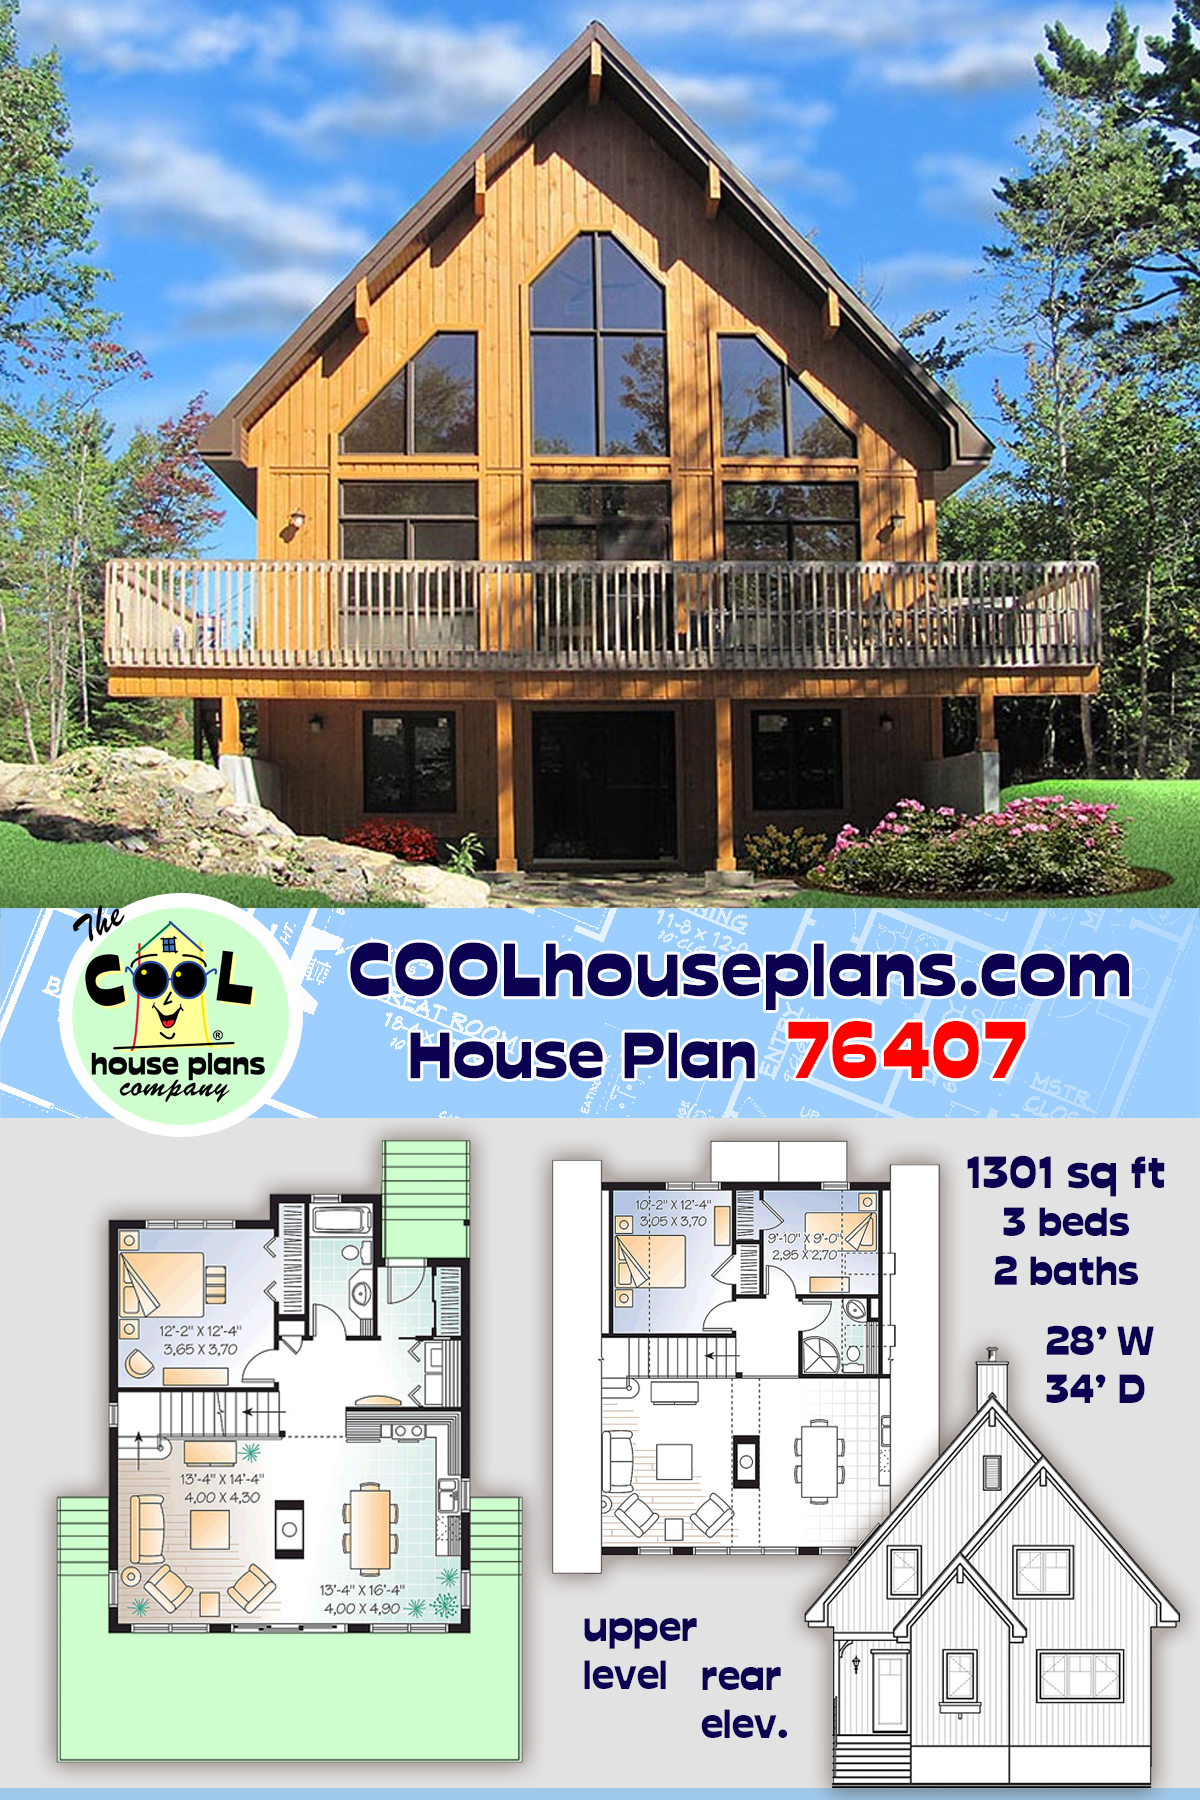 Cabin, Contemporary House Plan 76407 with 3 Beds, 2 Baths